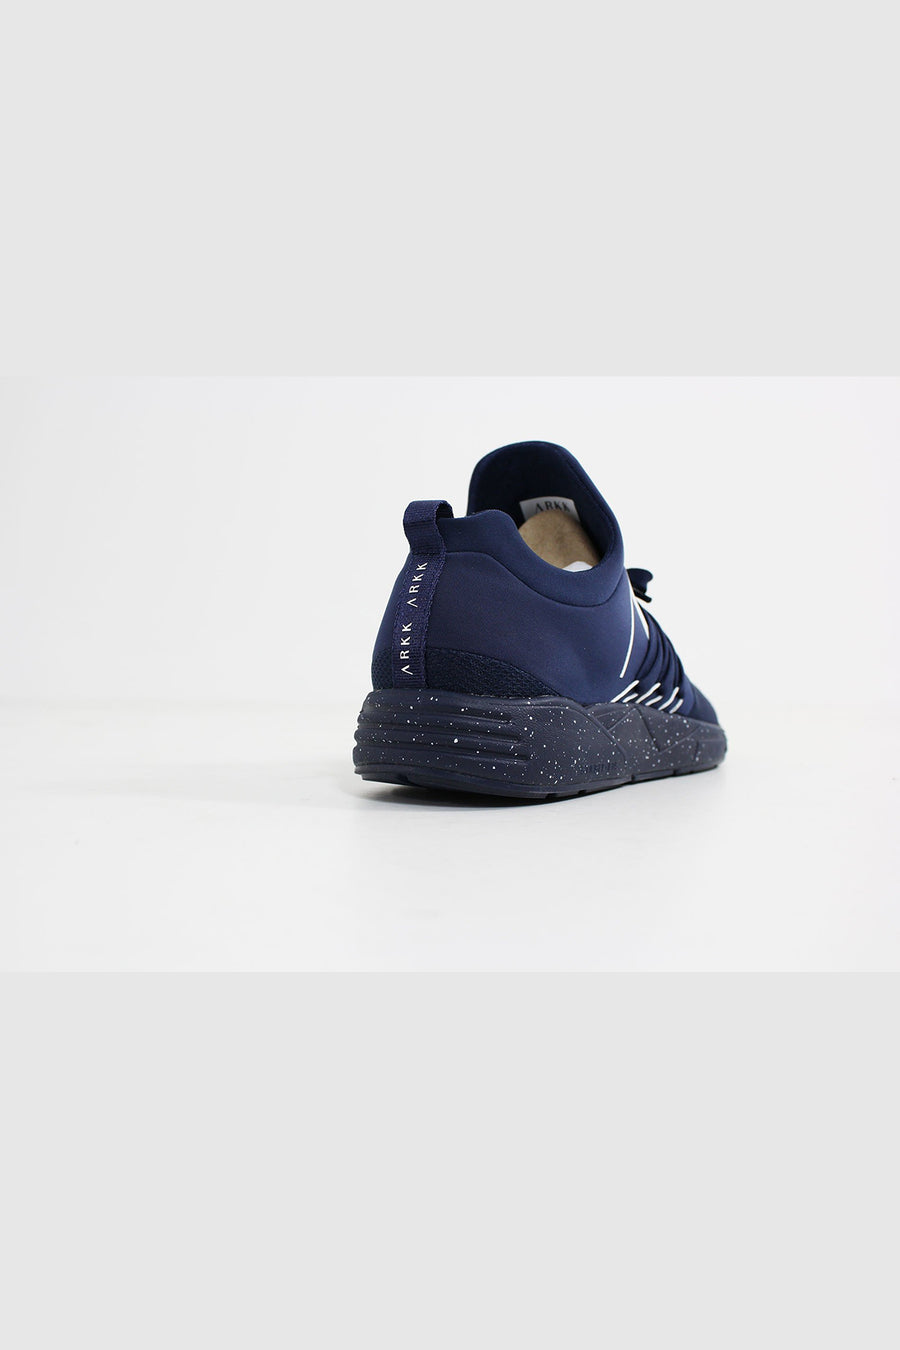 Arkk Copenhagen - Raven (Navy White Spray) EL1403-5210-M